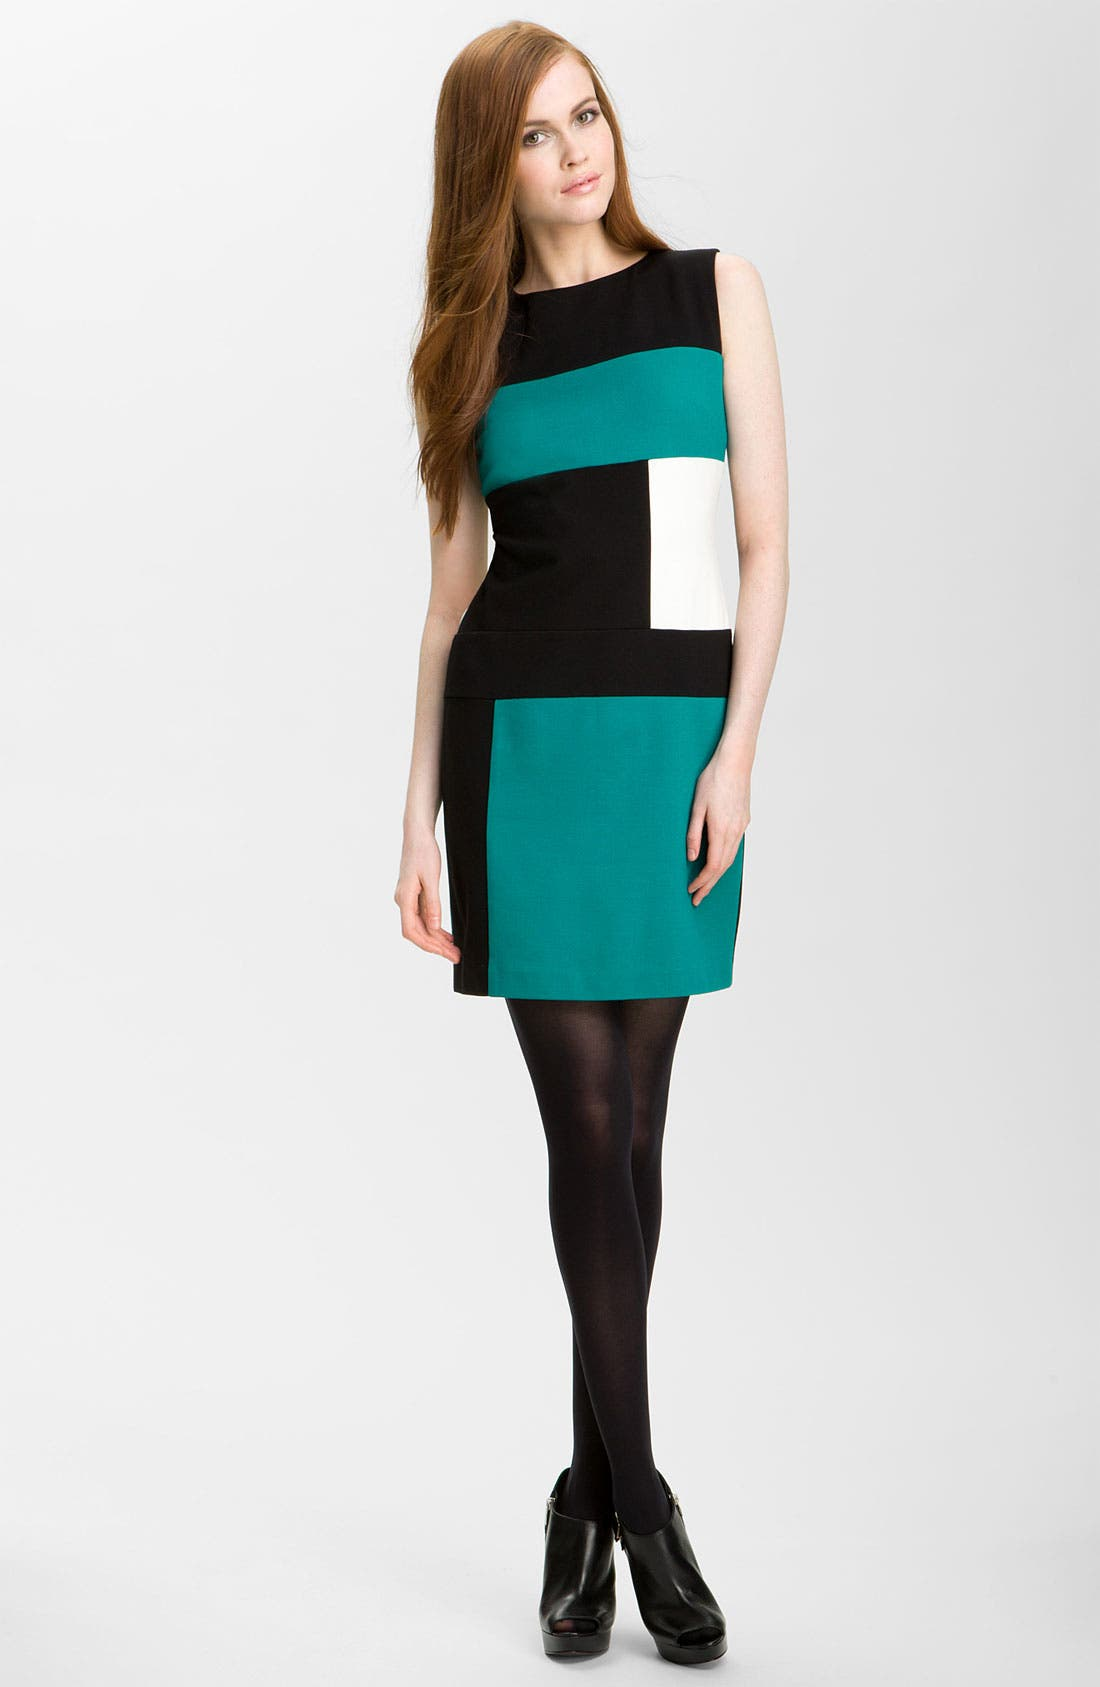 Main Image - Vince Camuto Sleeveless Colorblock Dress